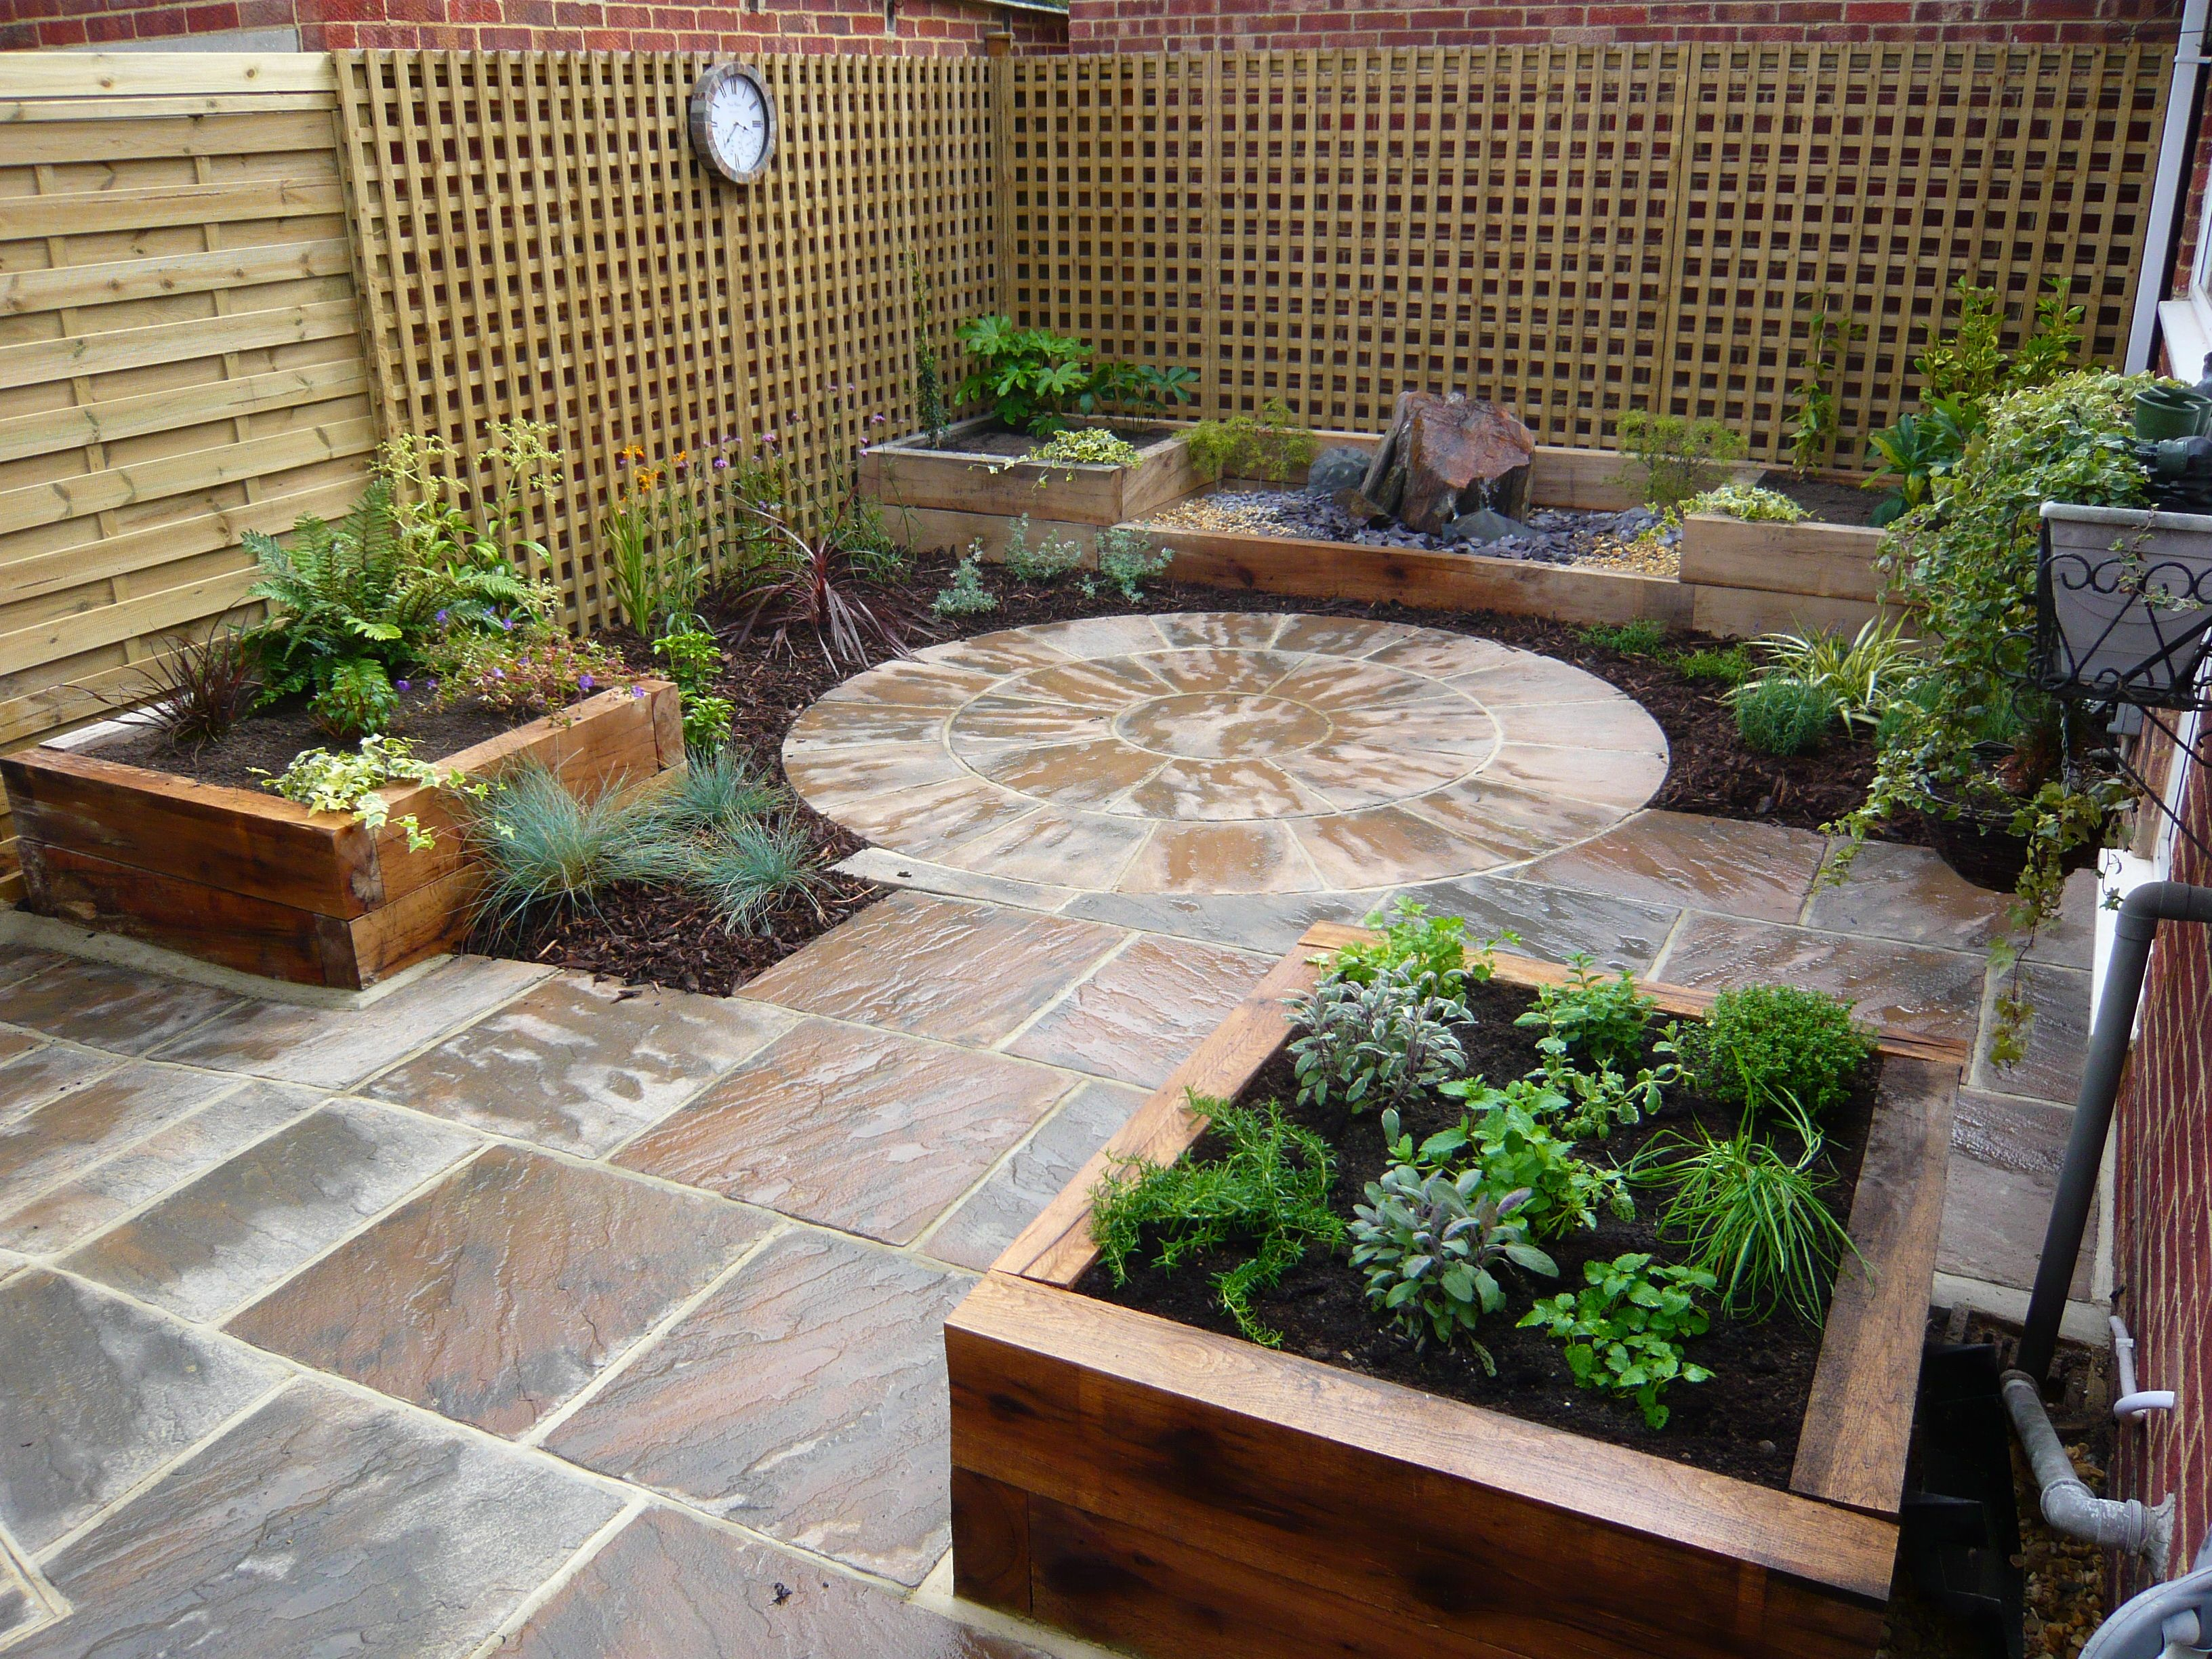 Garden Ideas 2013 courtyard garden - low maintenance, raised beds creating interest